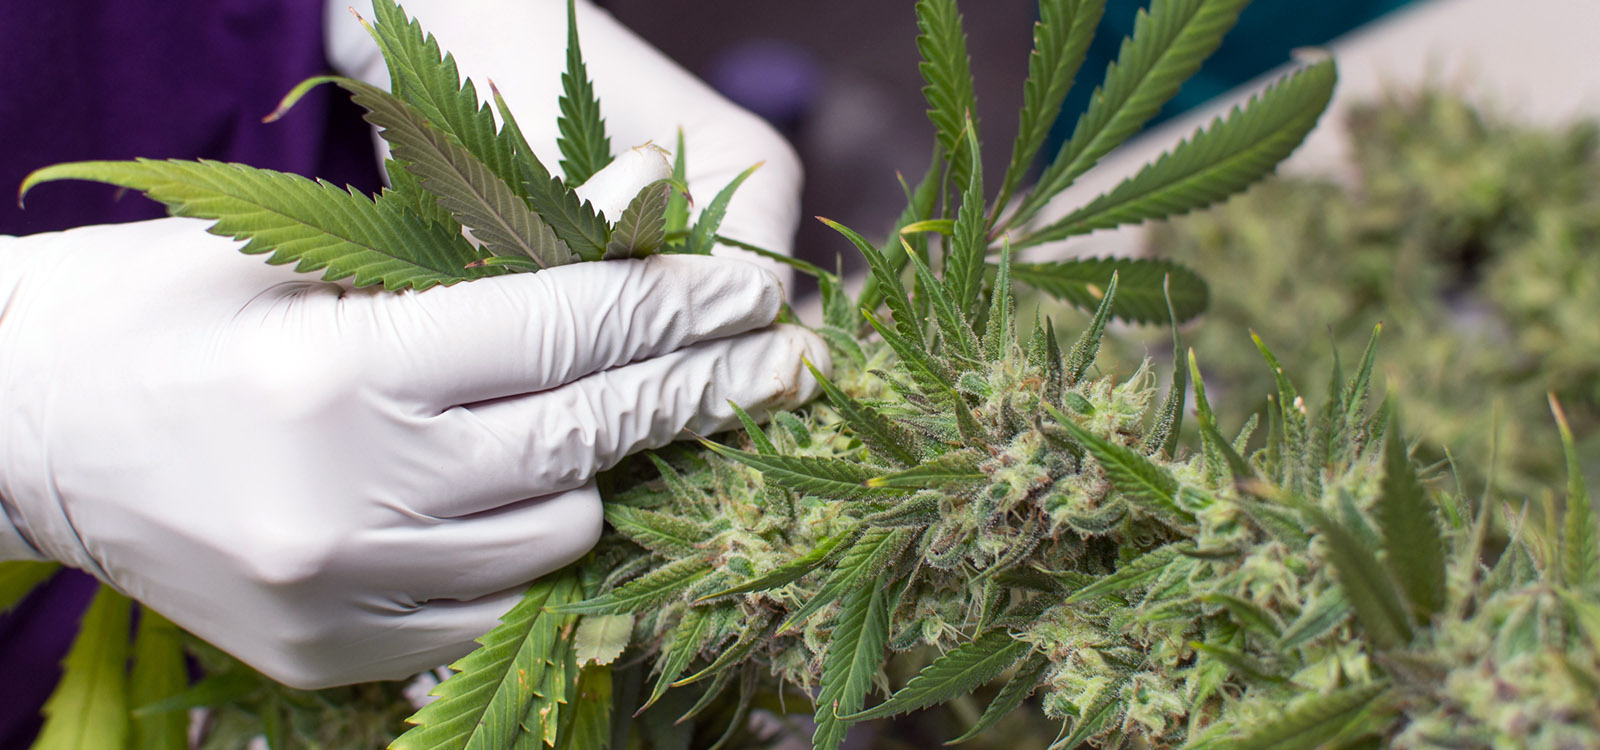 A cannabis worker plucks a leaf from the stem of a fully grow commercial-grade marijuana plant.